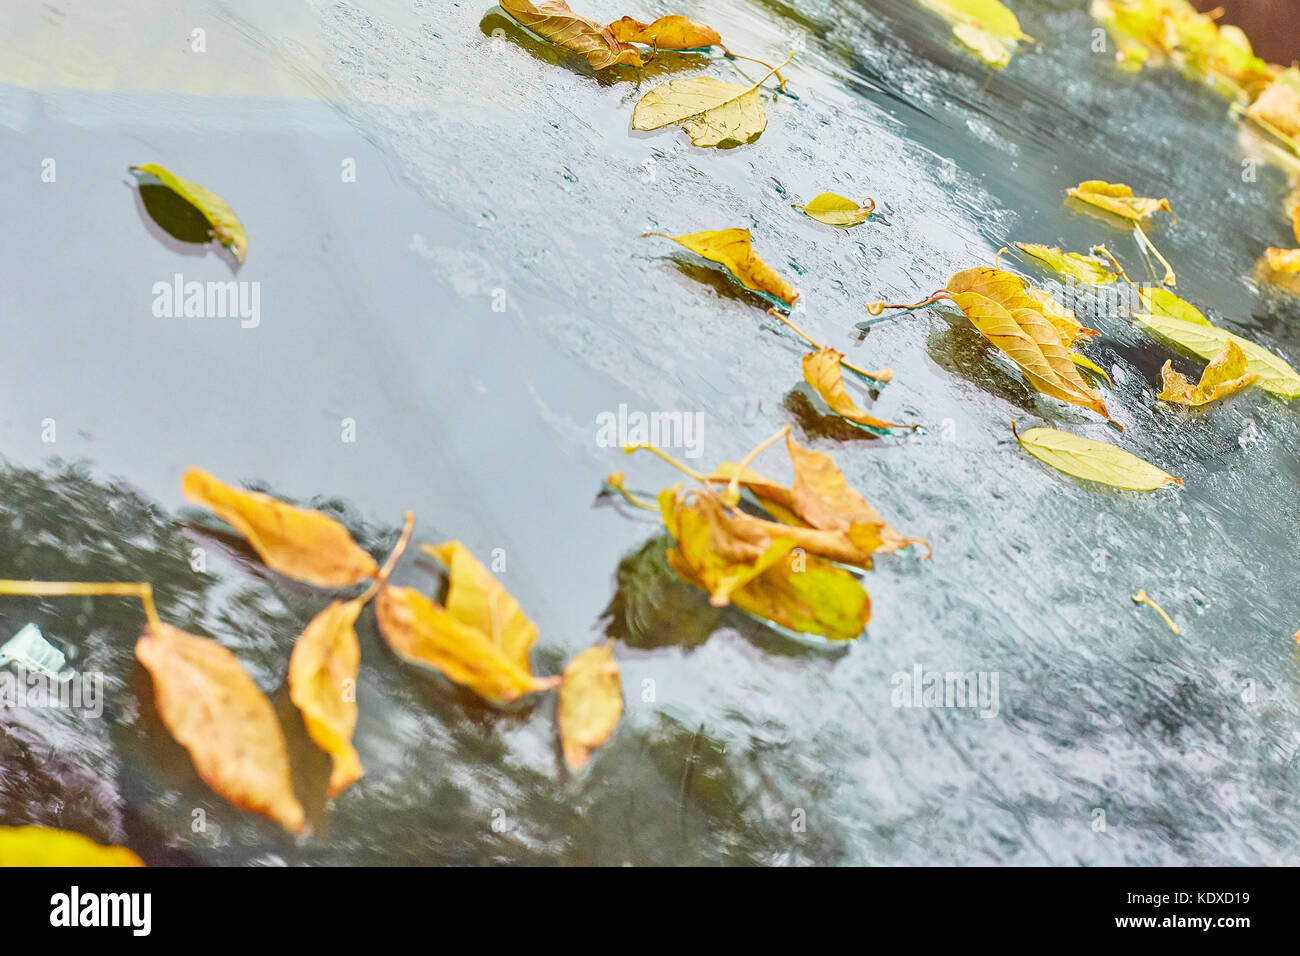 View of the colors of autumn, leaves through the window glass covered by raindrops - Stock Image